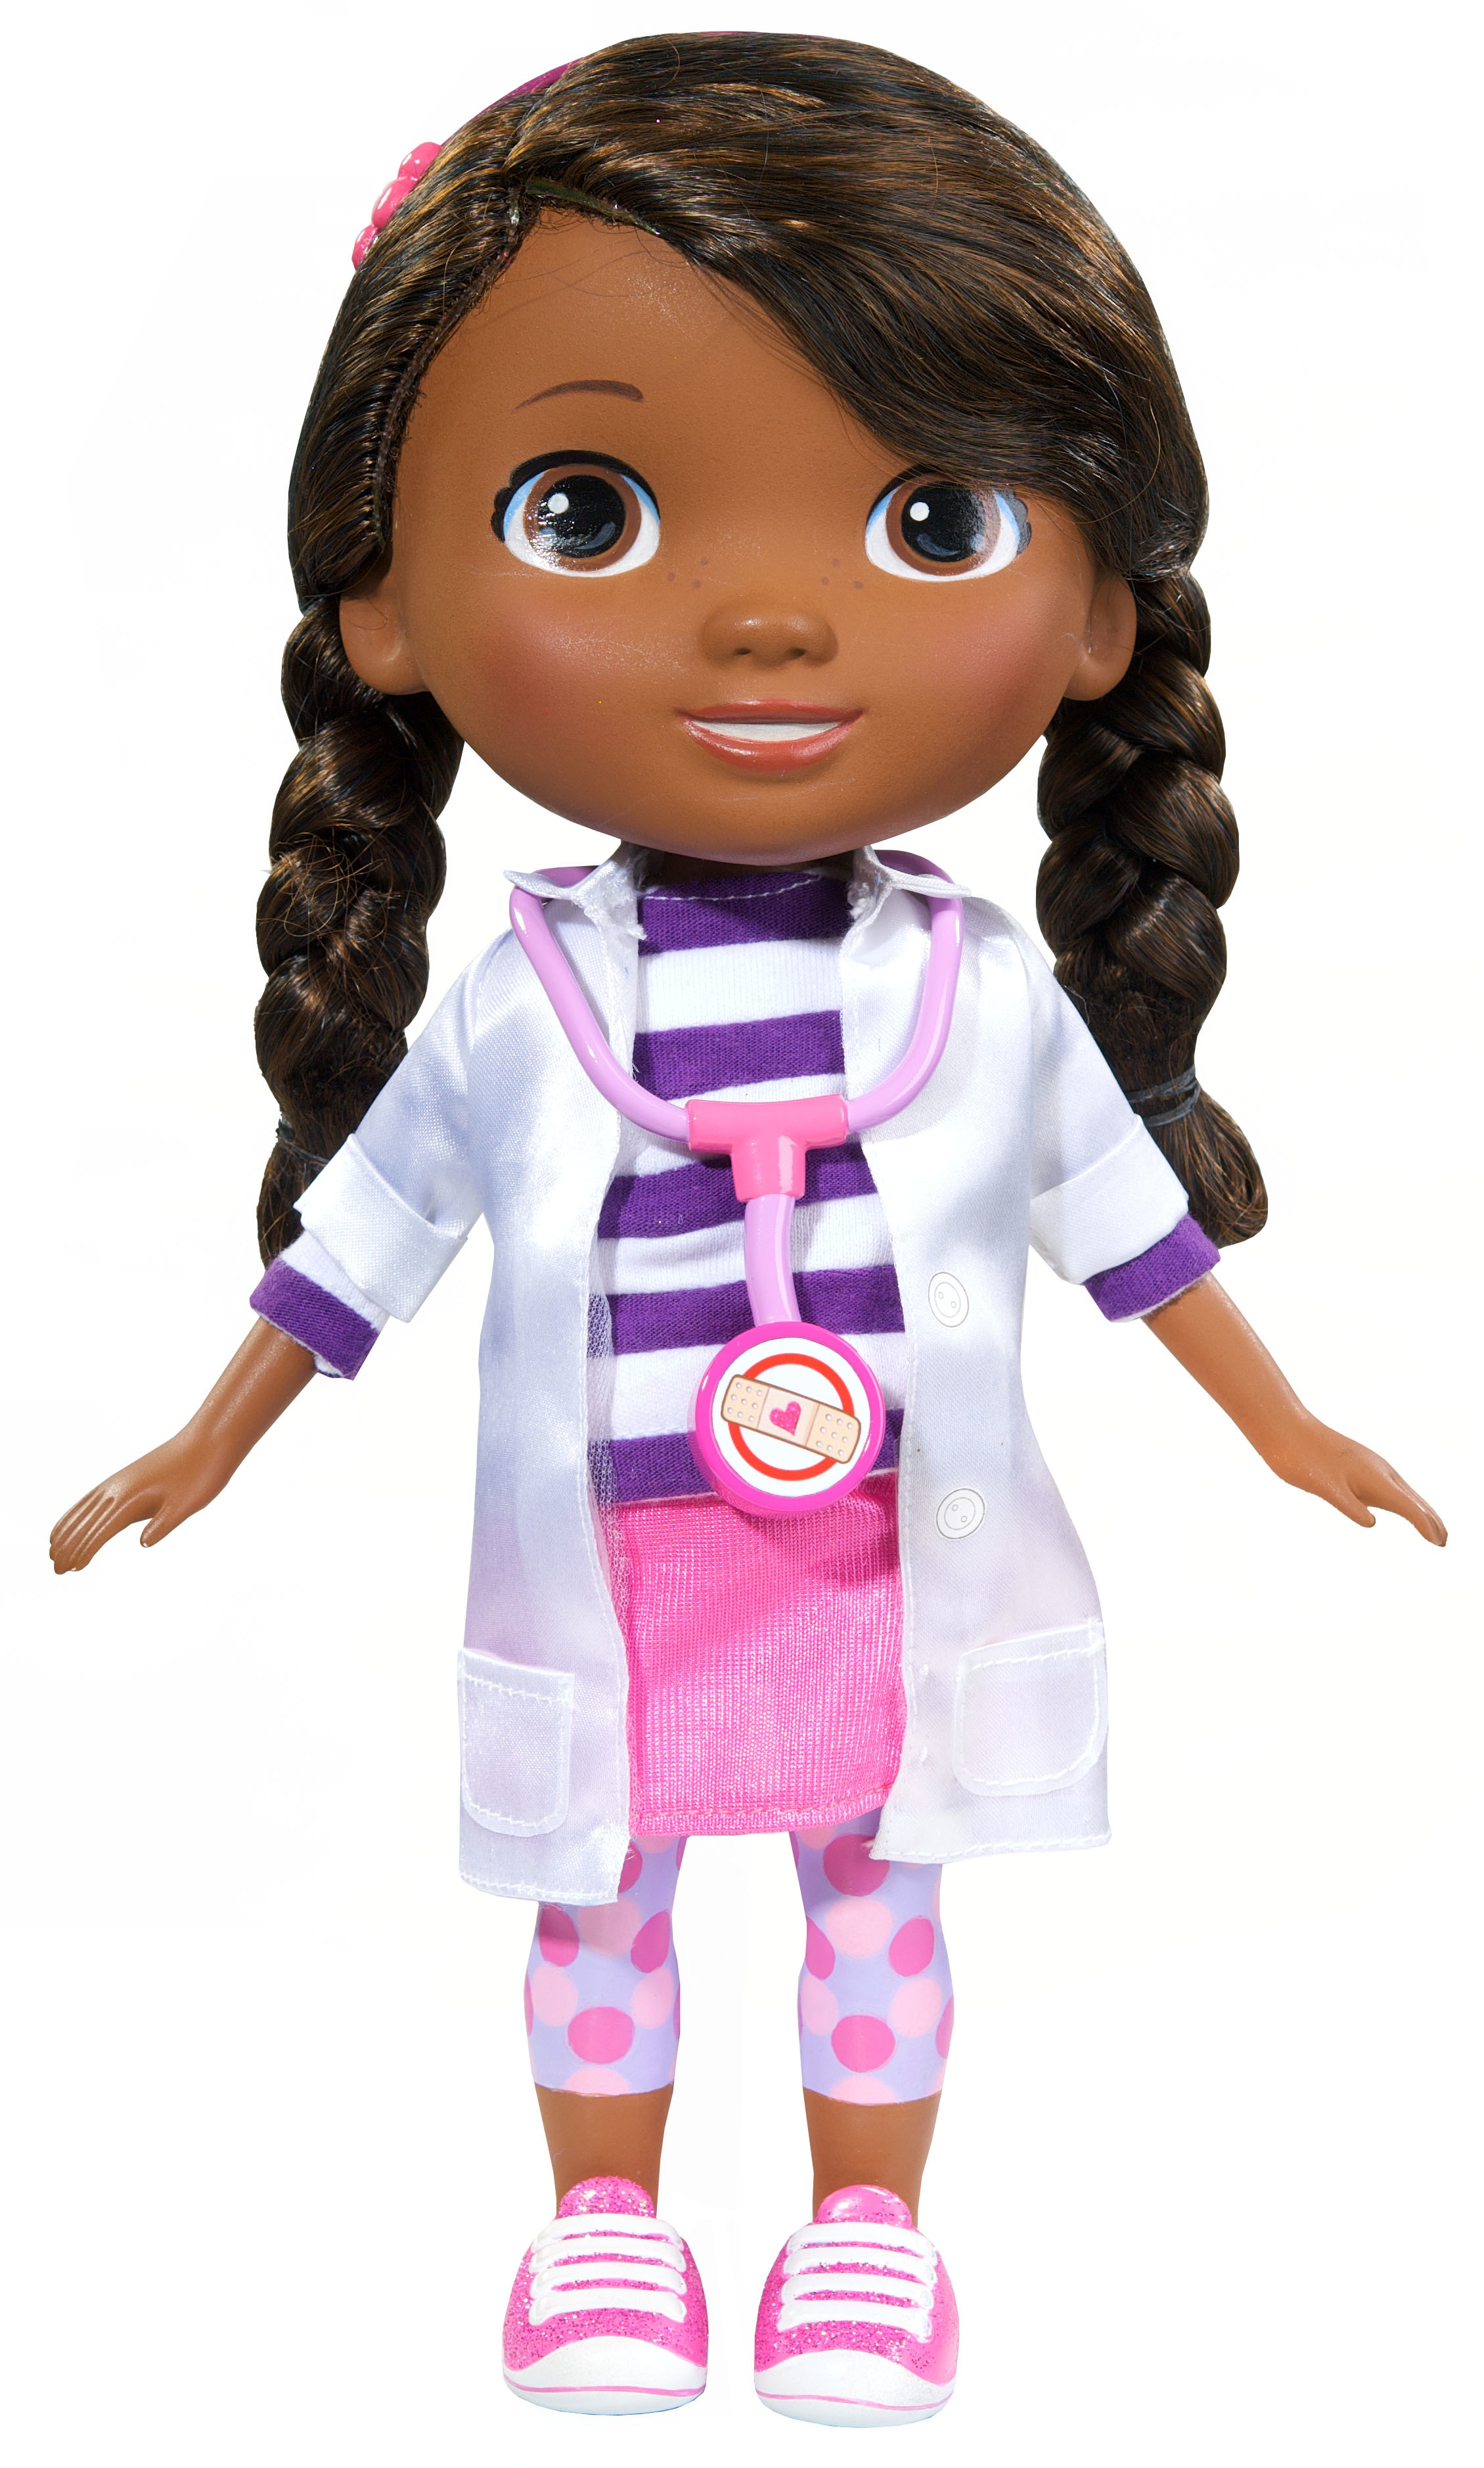 Doc Mcstuffins Toys : Hottest toys of the year gephardt daily